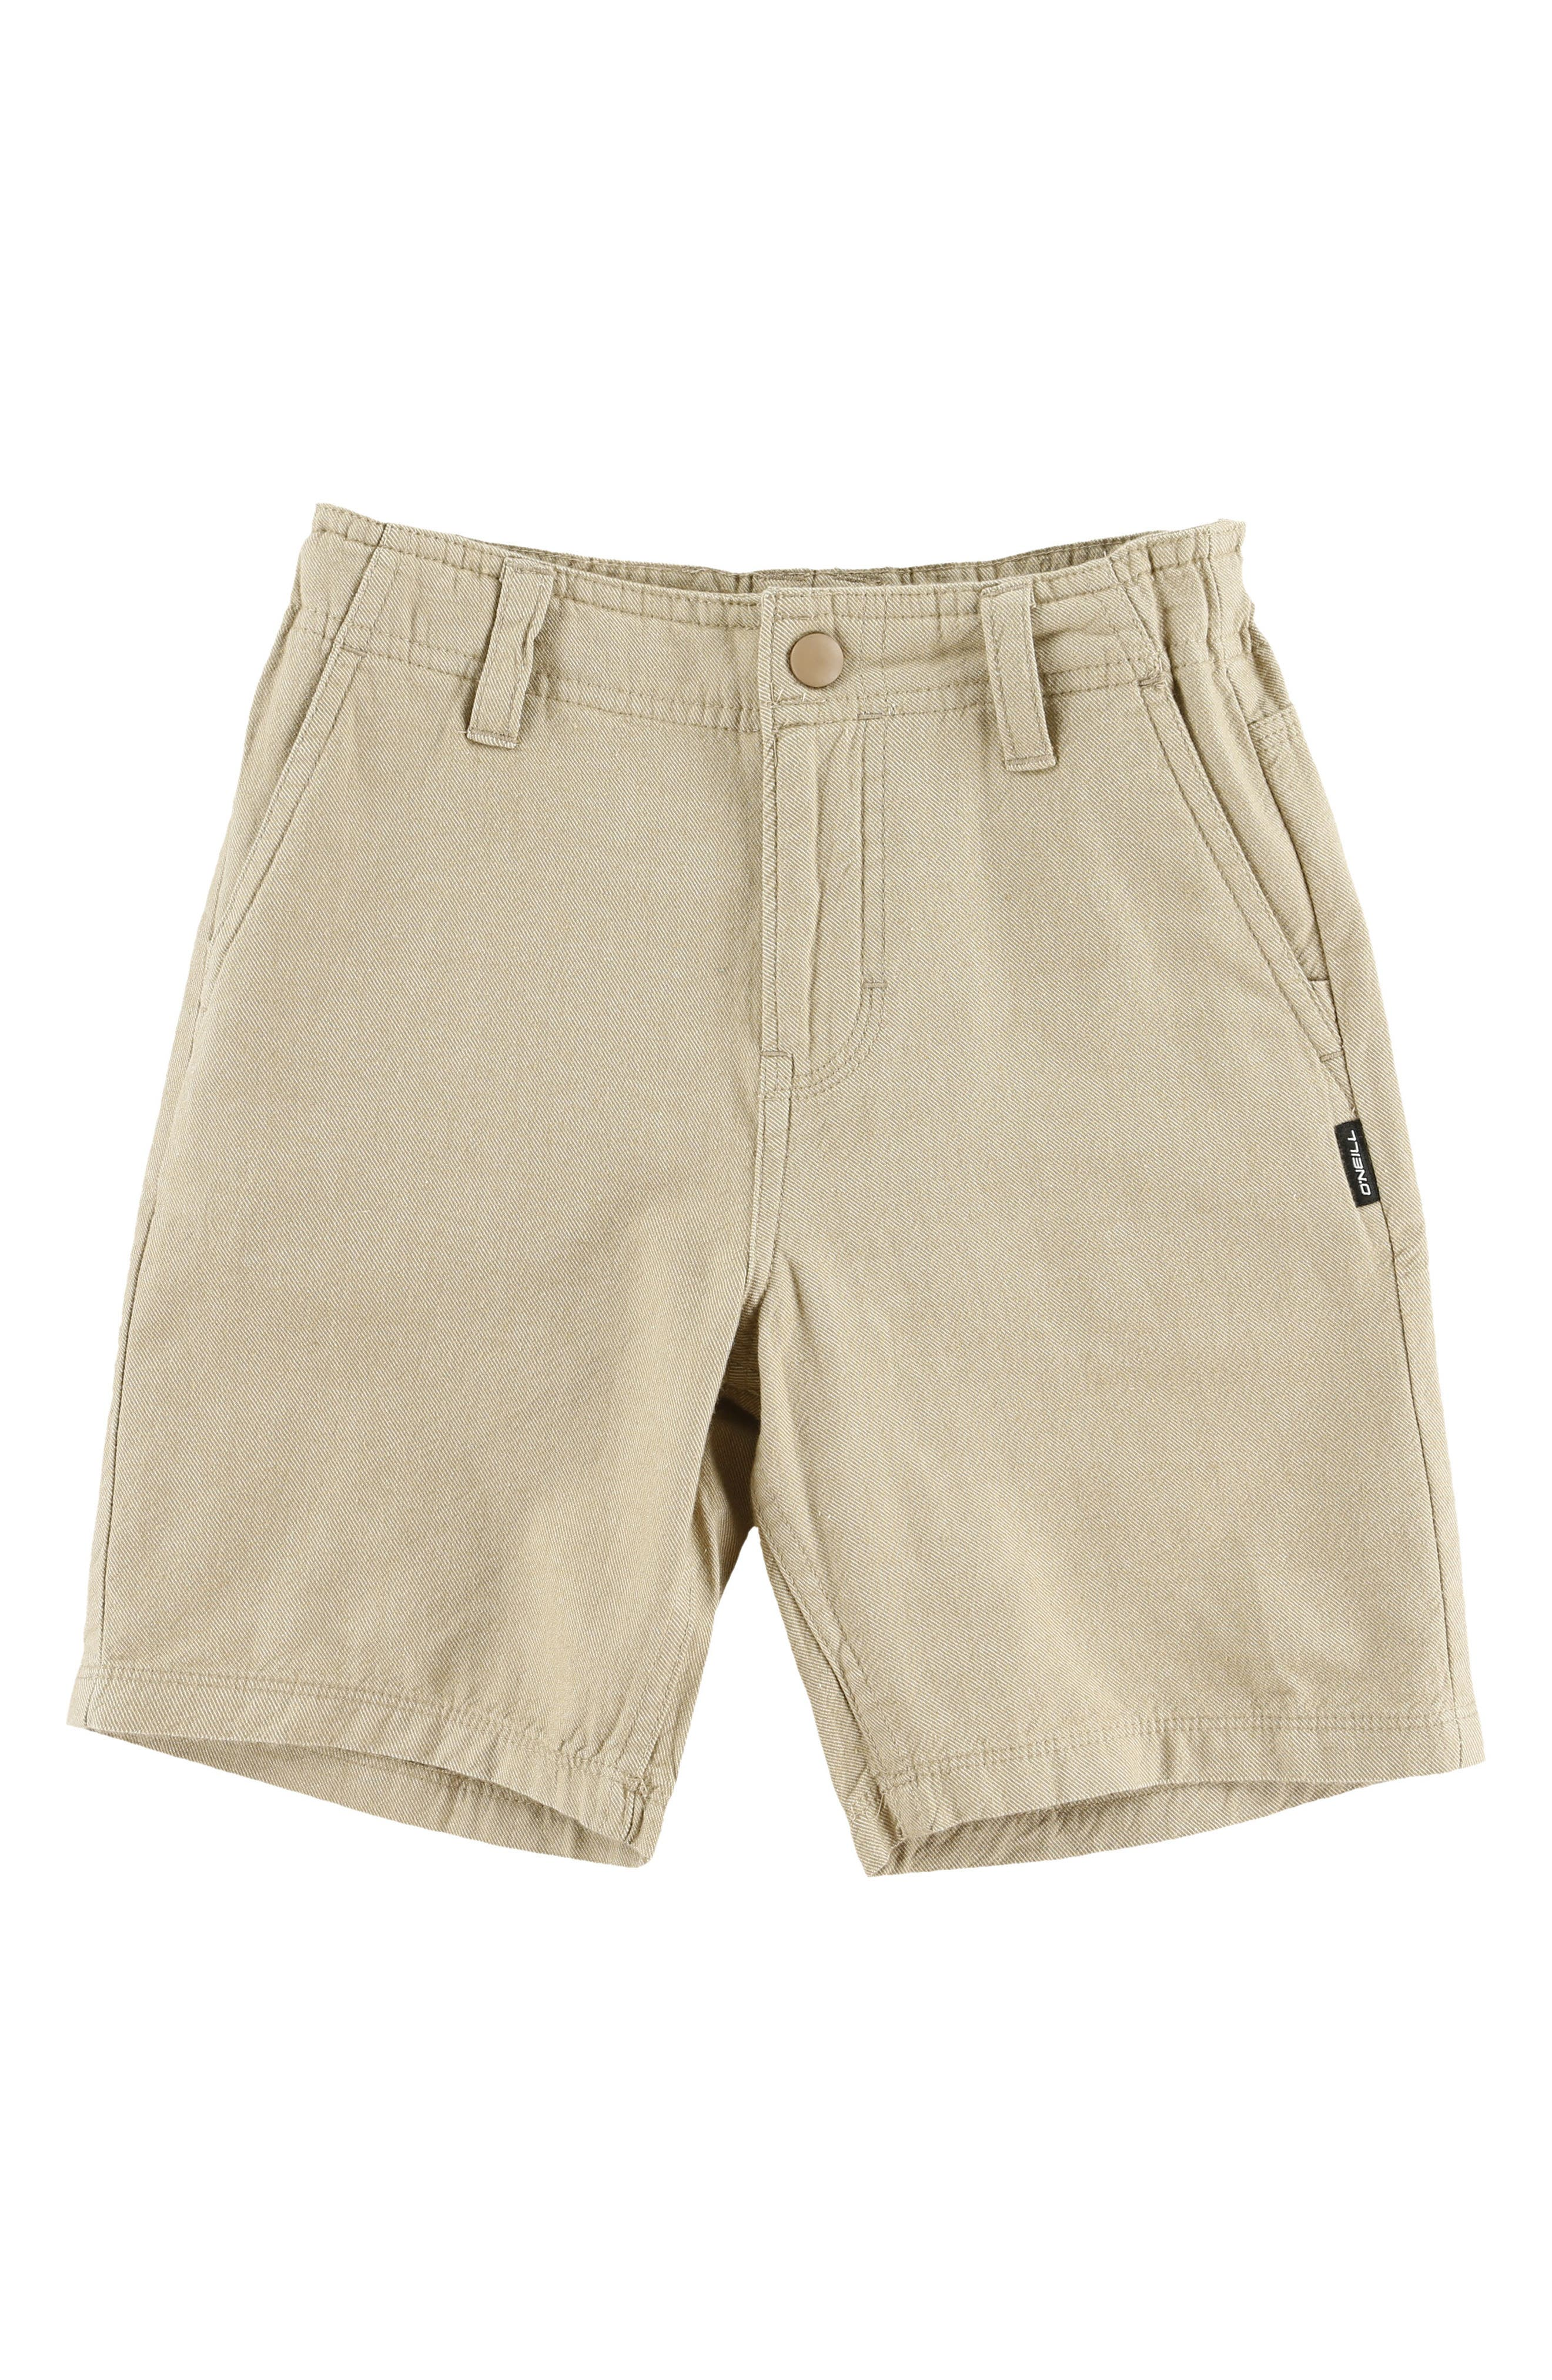 O'Neill Scranton Chino Shorts (Toddler Boys)